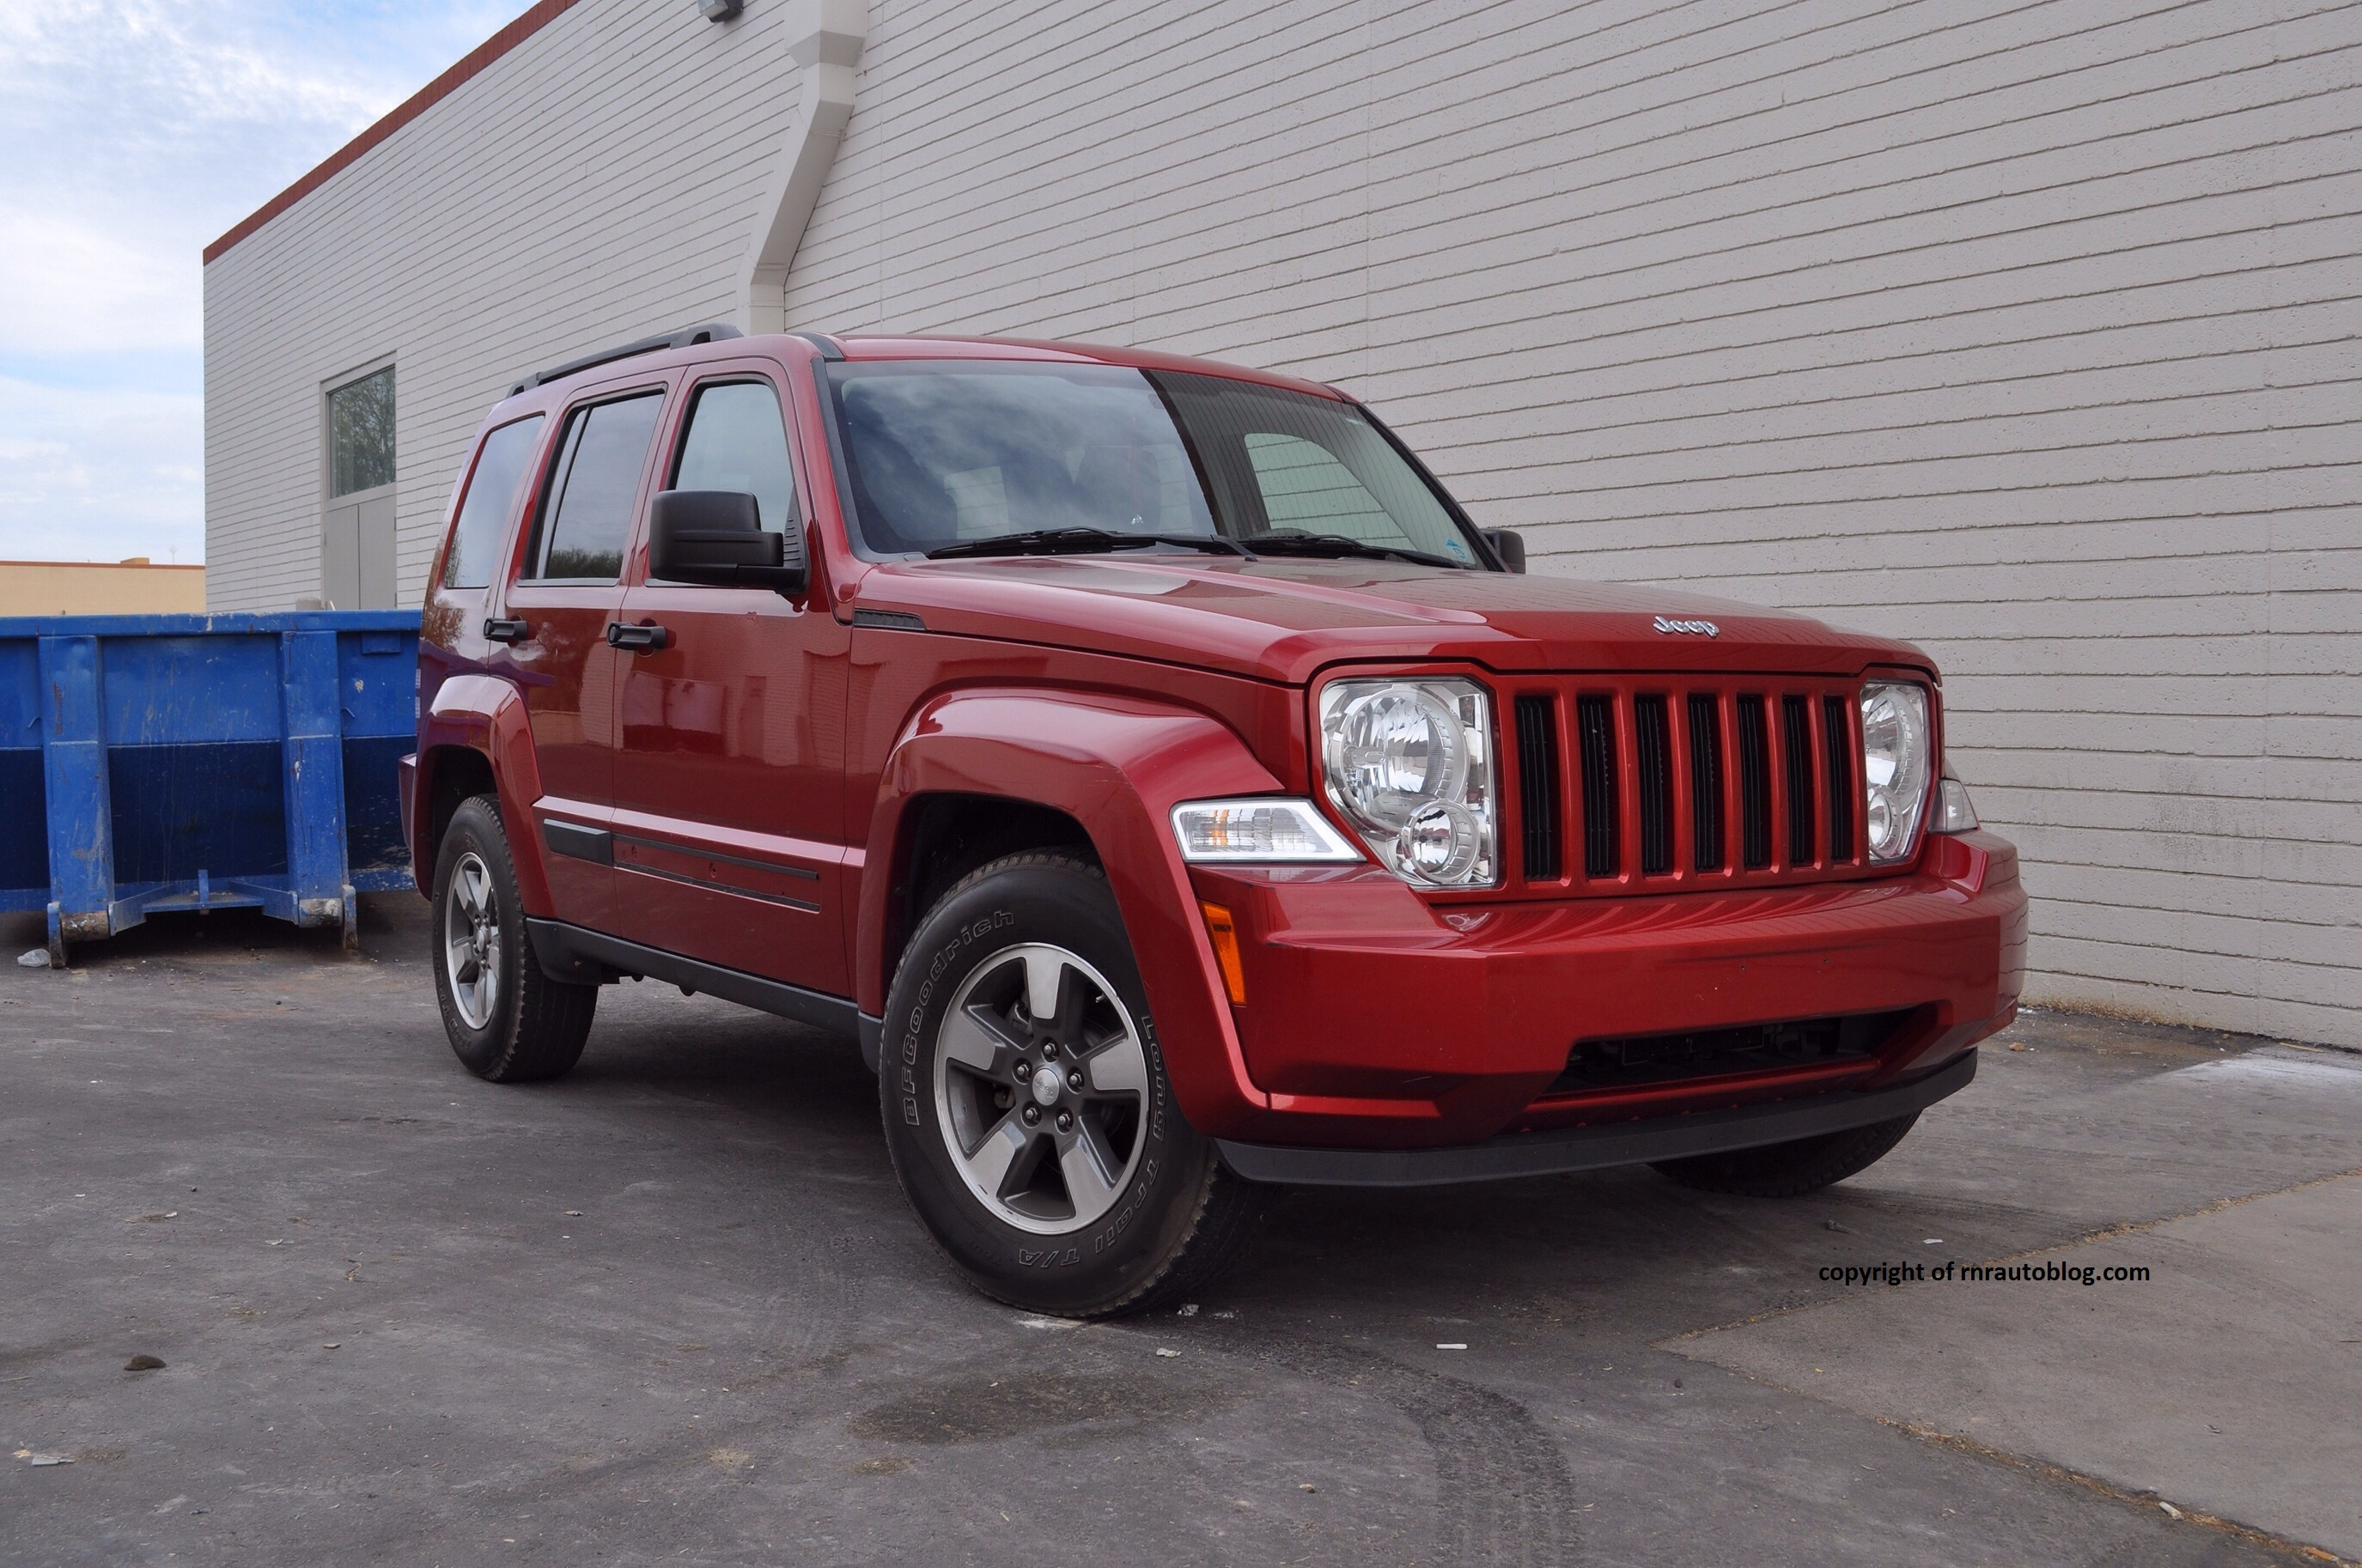 2008 jeep liberty sport review | rnr automotive blog